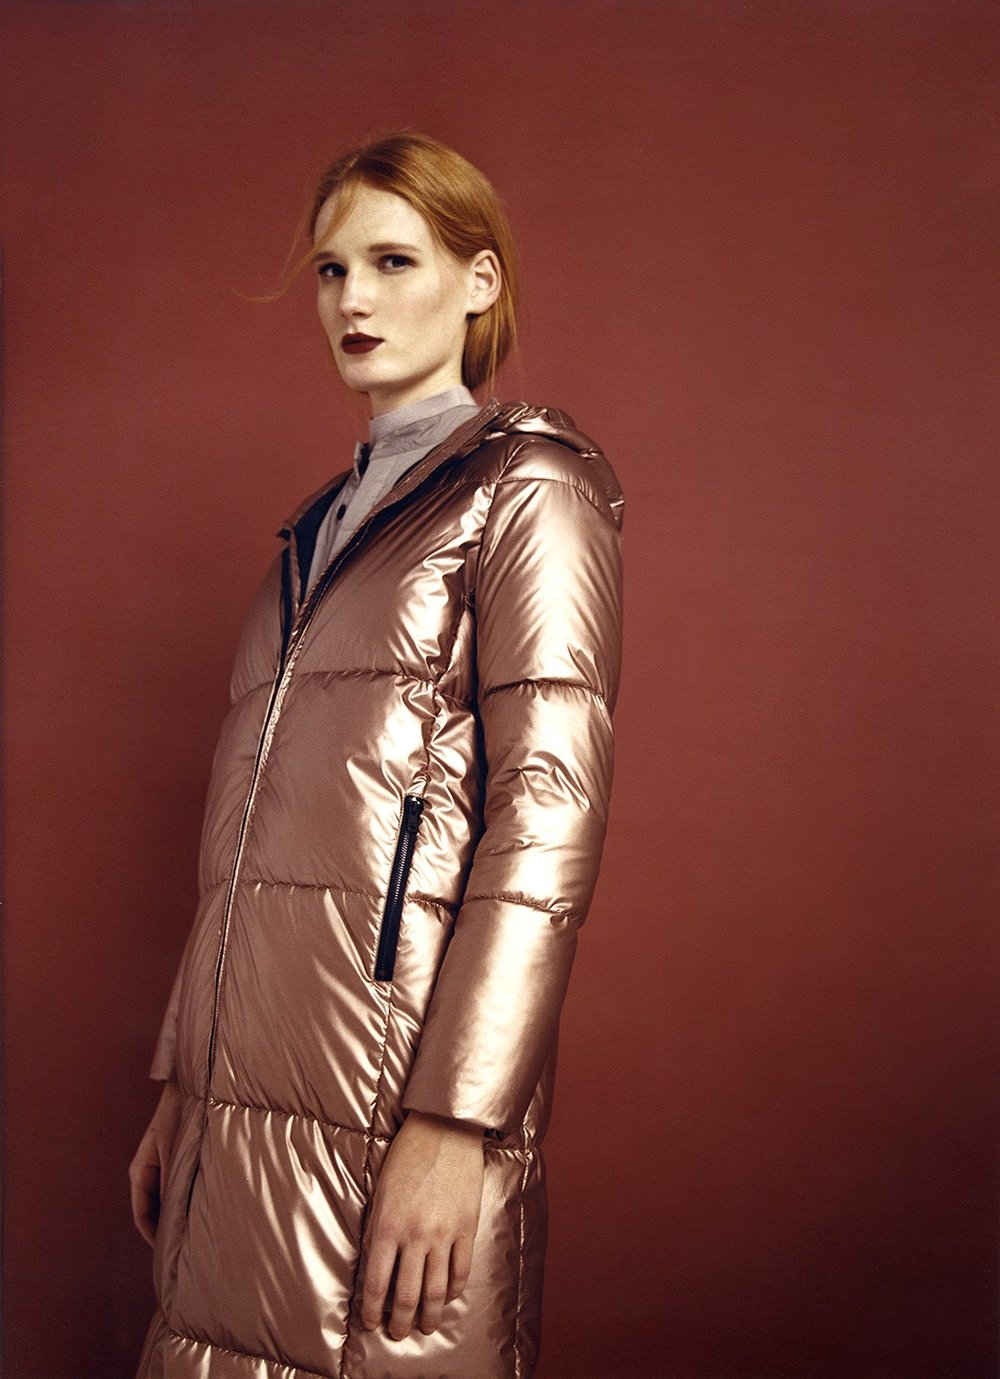 bronze coat made of recycled plastic bottles